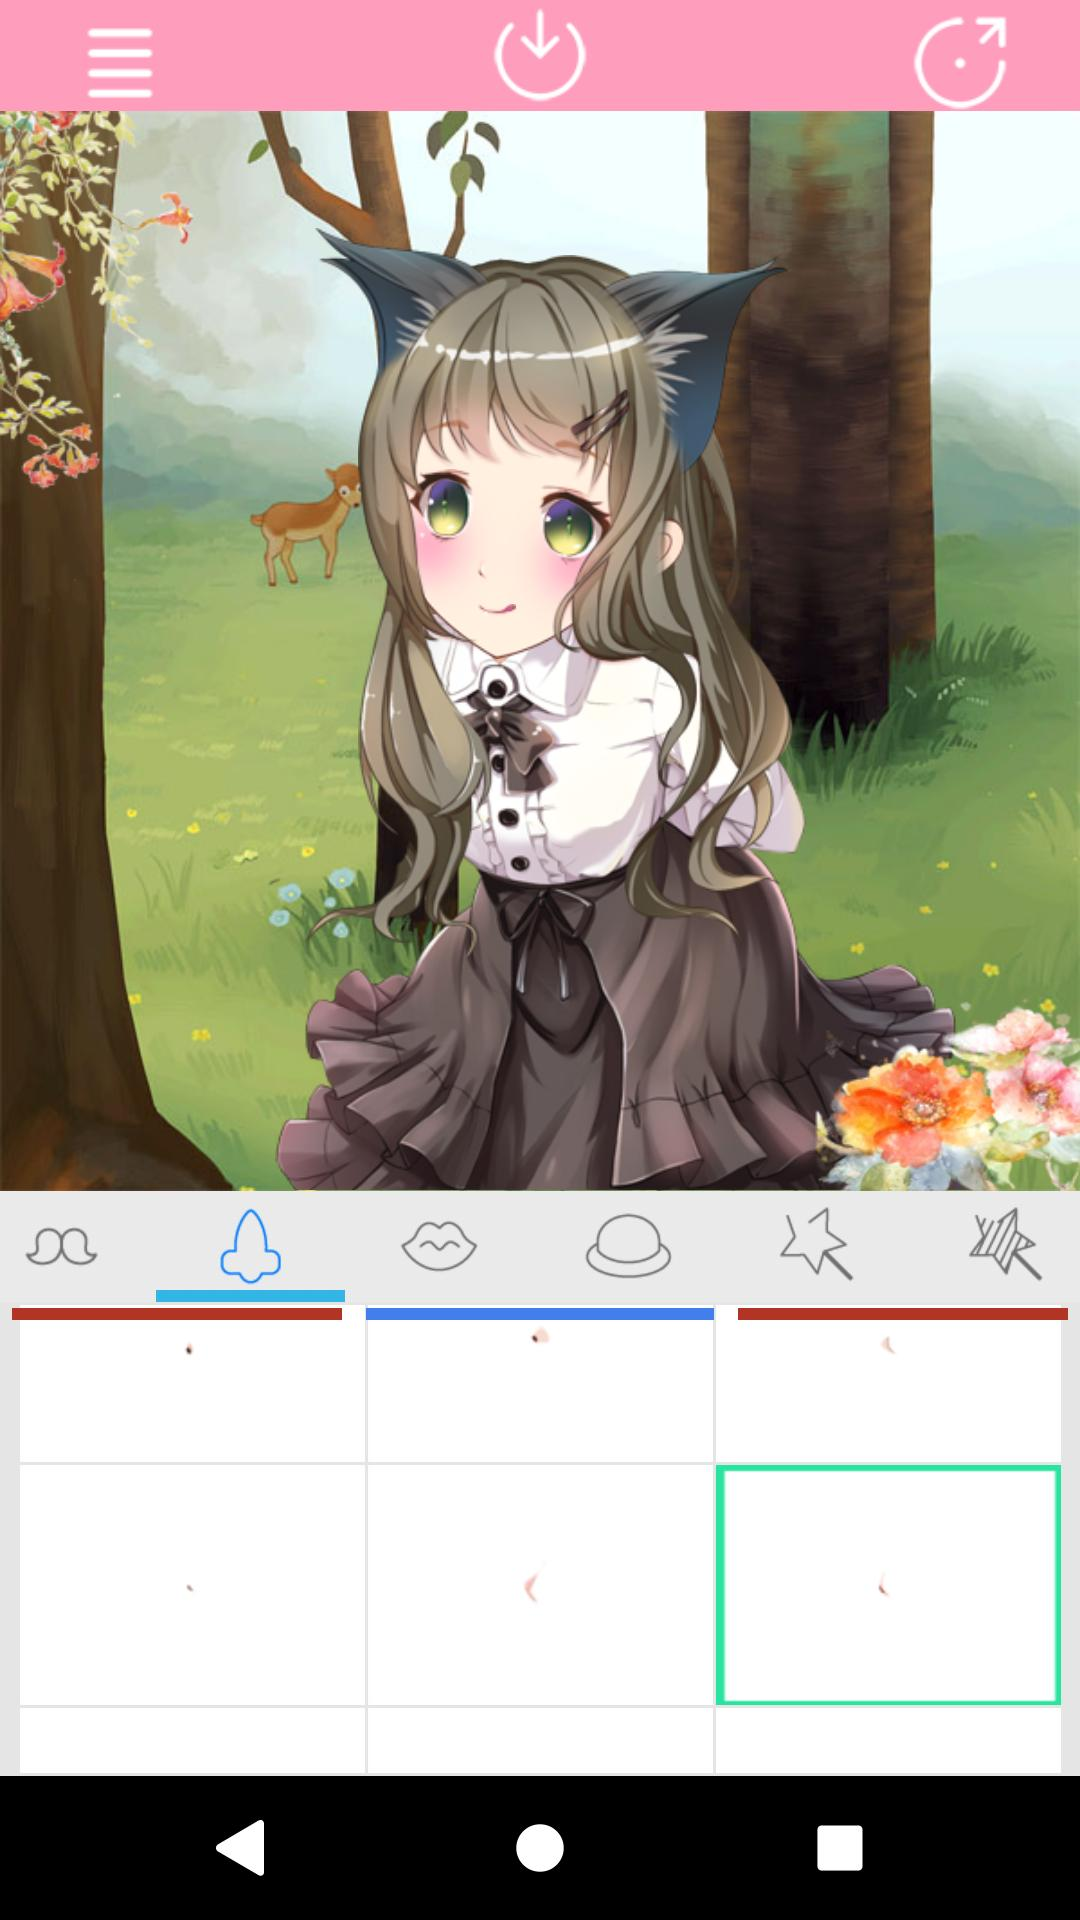 Kawaii Anime Girl Factory for Android - APK Download